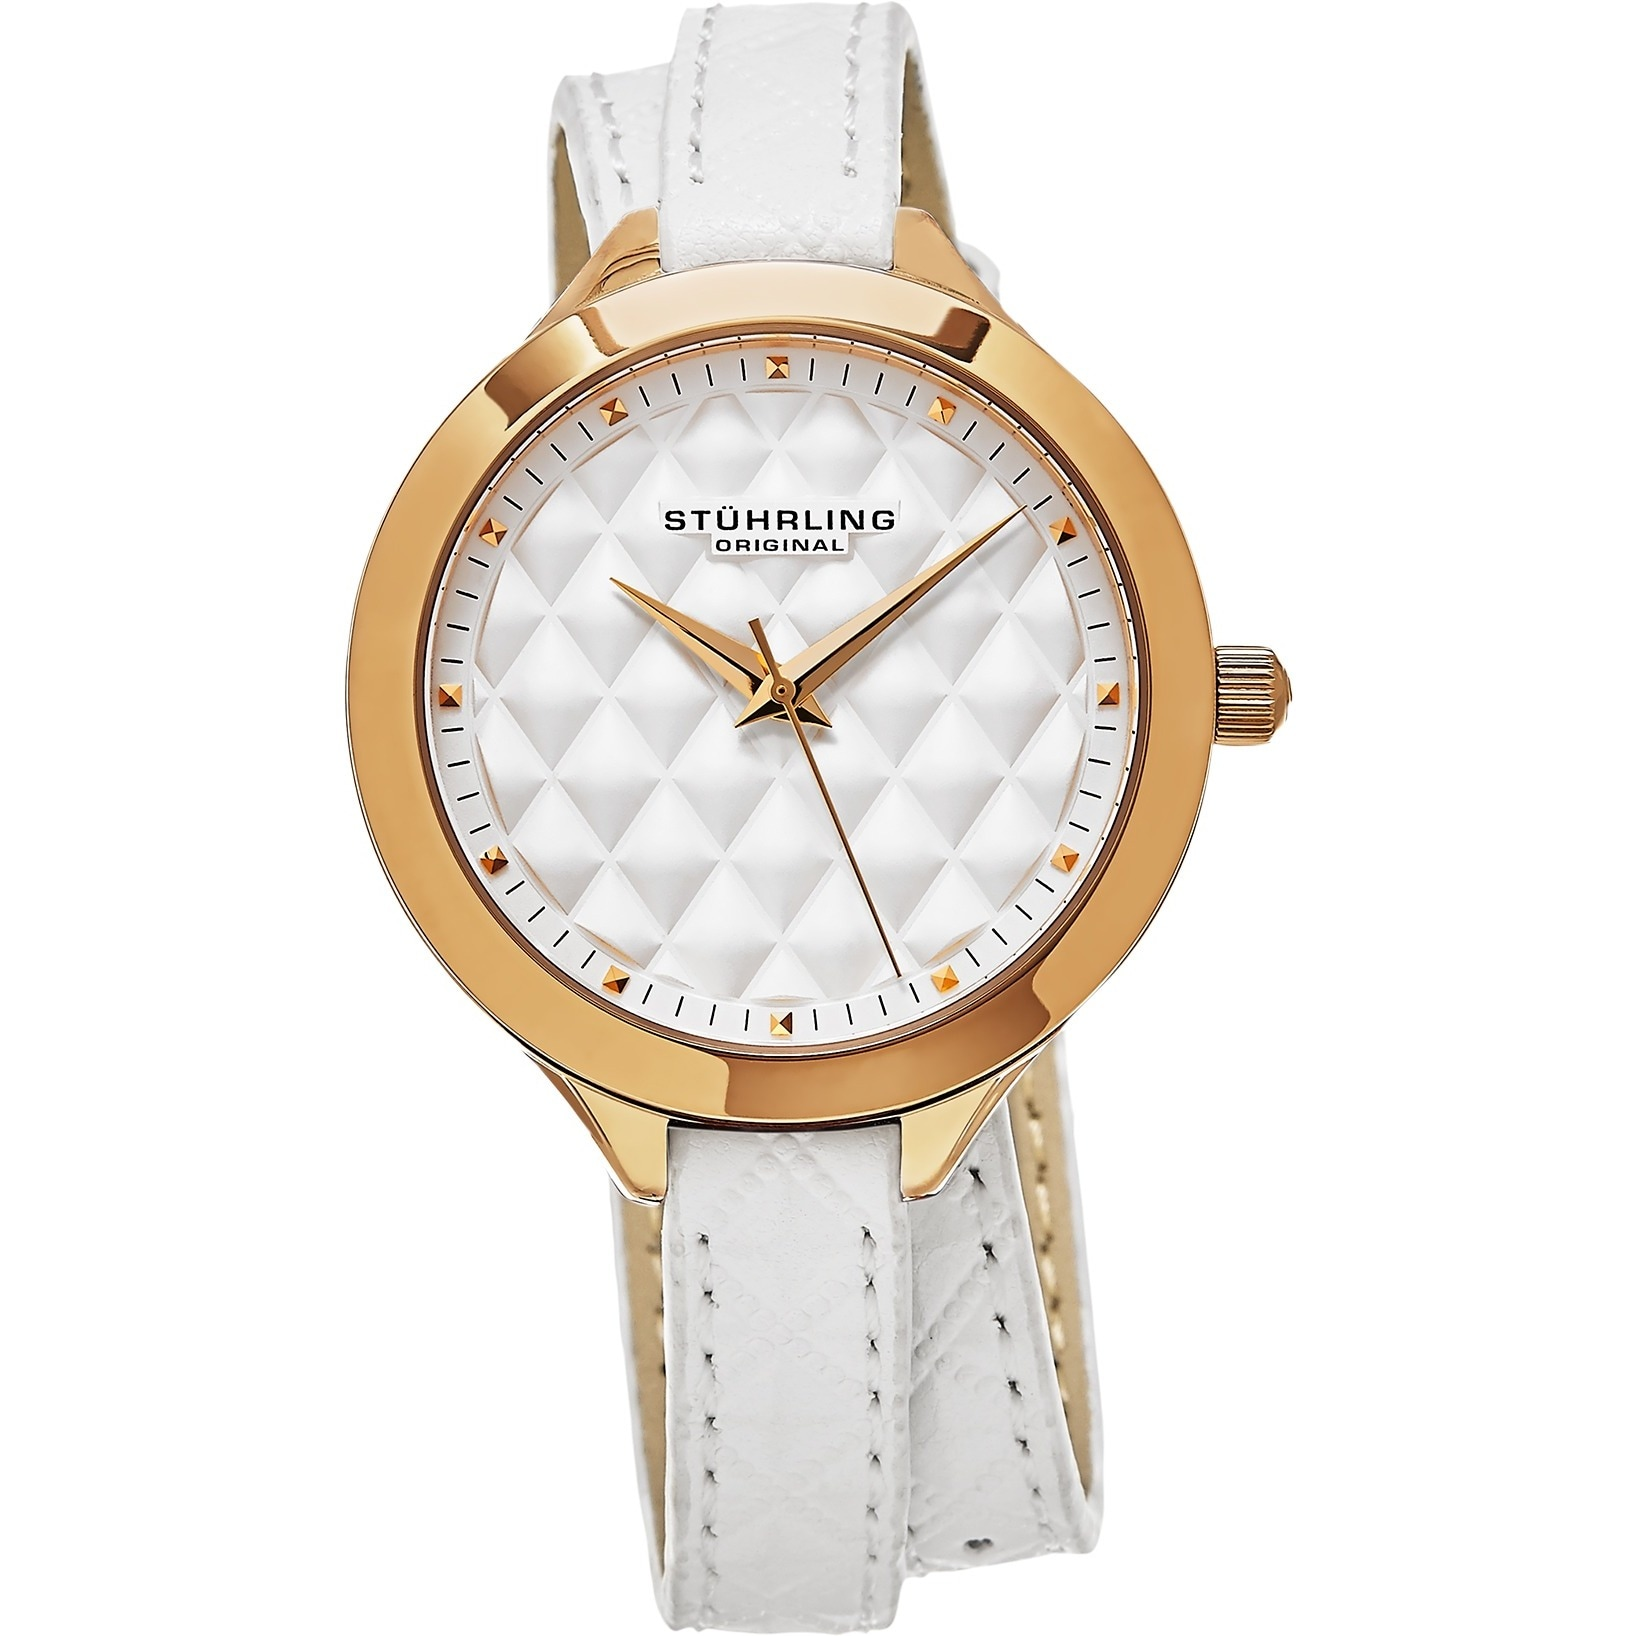 4a266bba7 Shop Stuhrling Original Women's Vogue Quartz White Double Wrap Leather  Strap Watch - Free Shipping Today - Overstock - 10450706